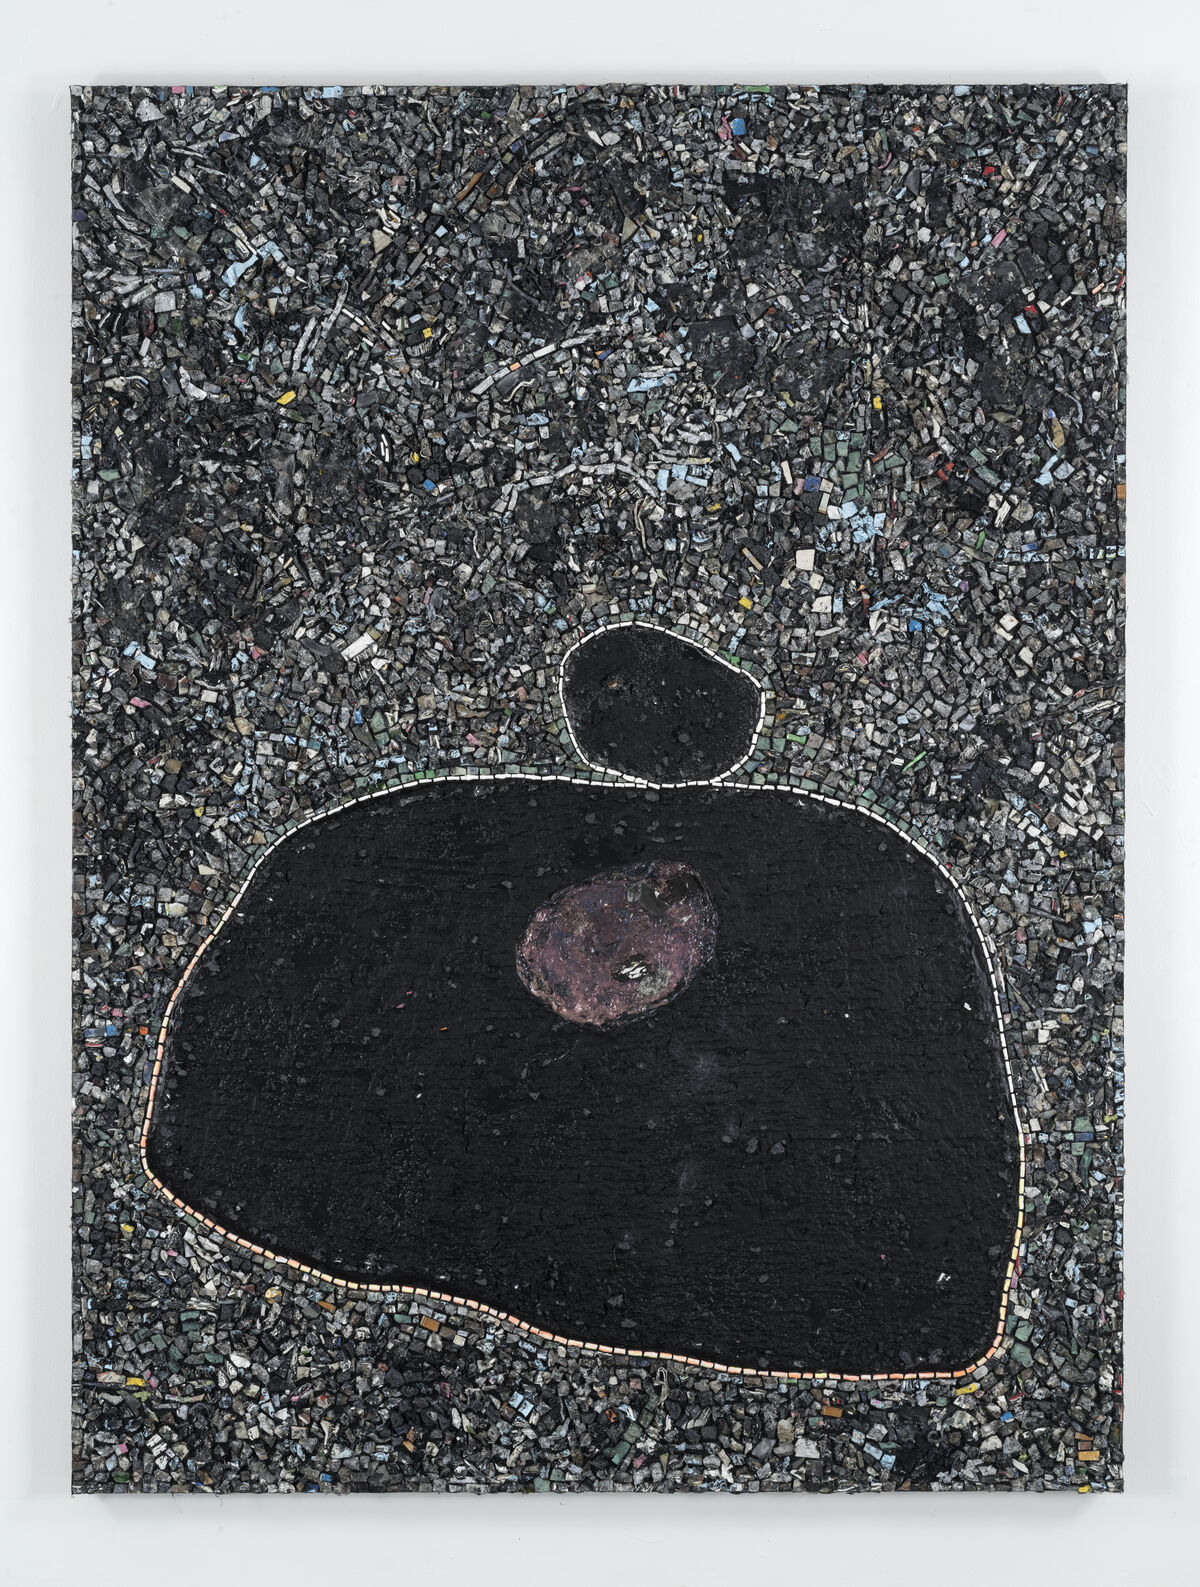 Jack Whitten, Black Monolith X, Birth of Muhammad Ali, 2016. Photo by John Berens. Courtesy of the Joyner/Giuffrida Collection and Hauser & Wirth.